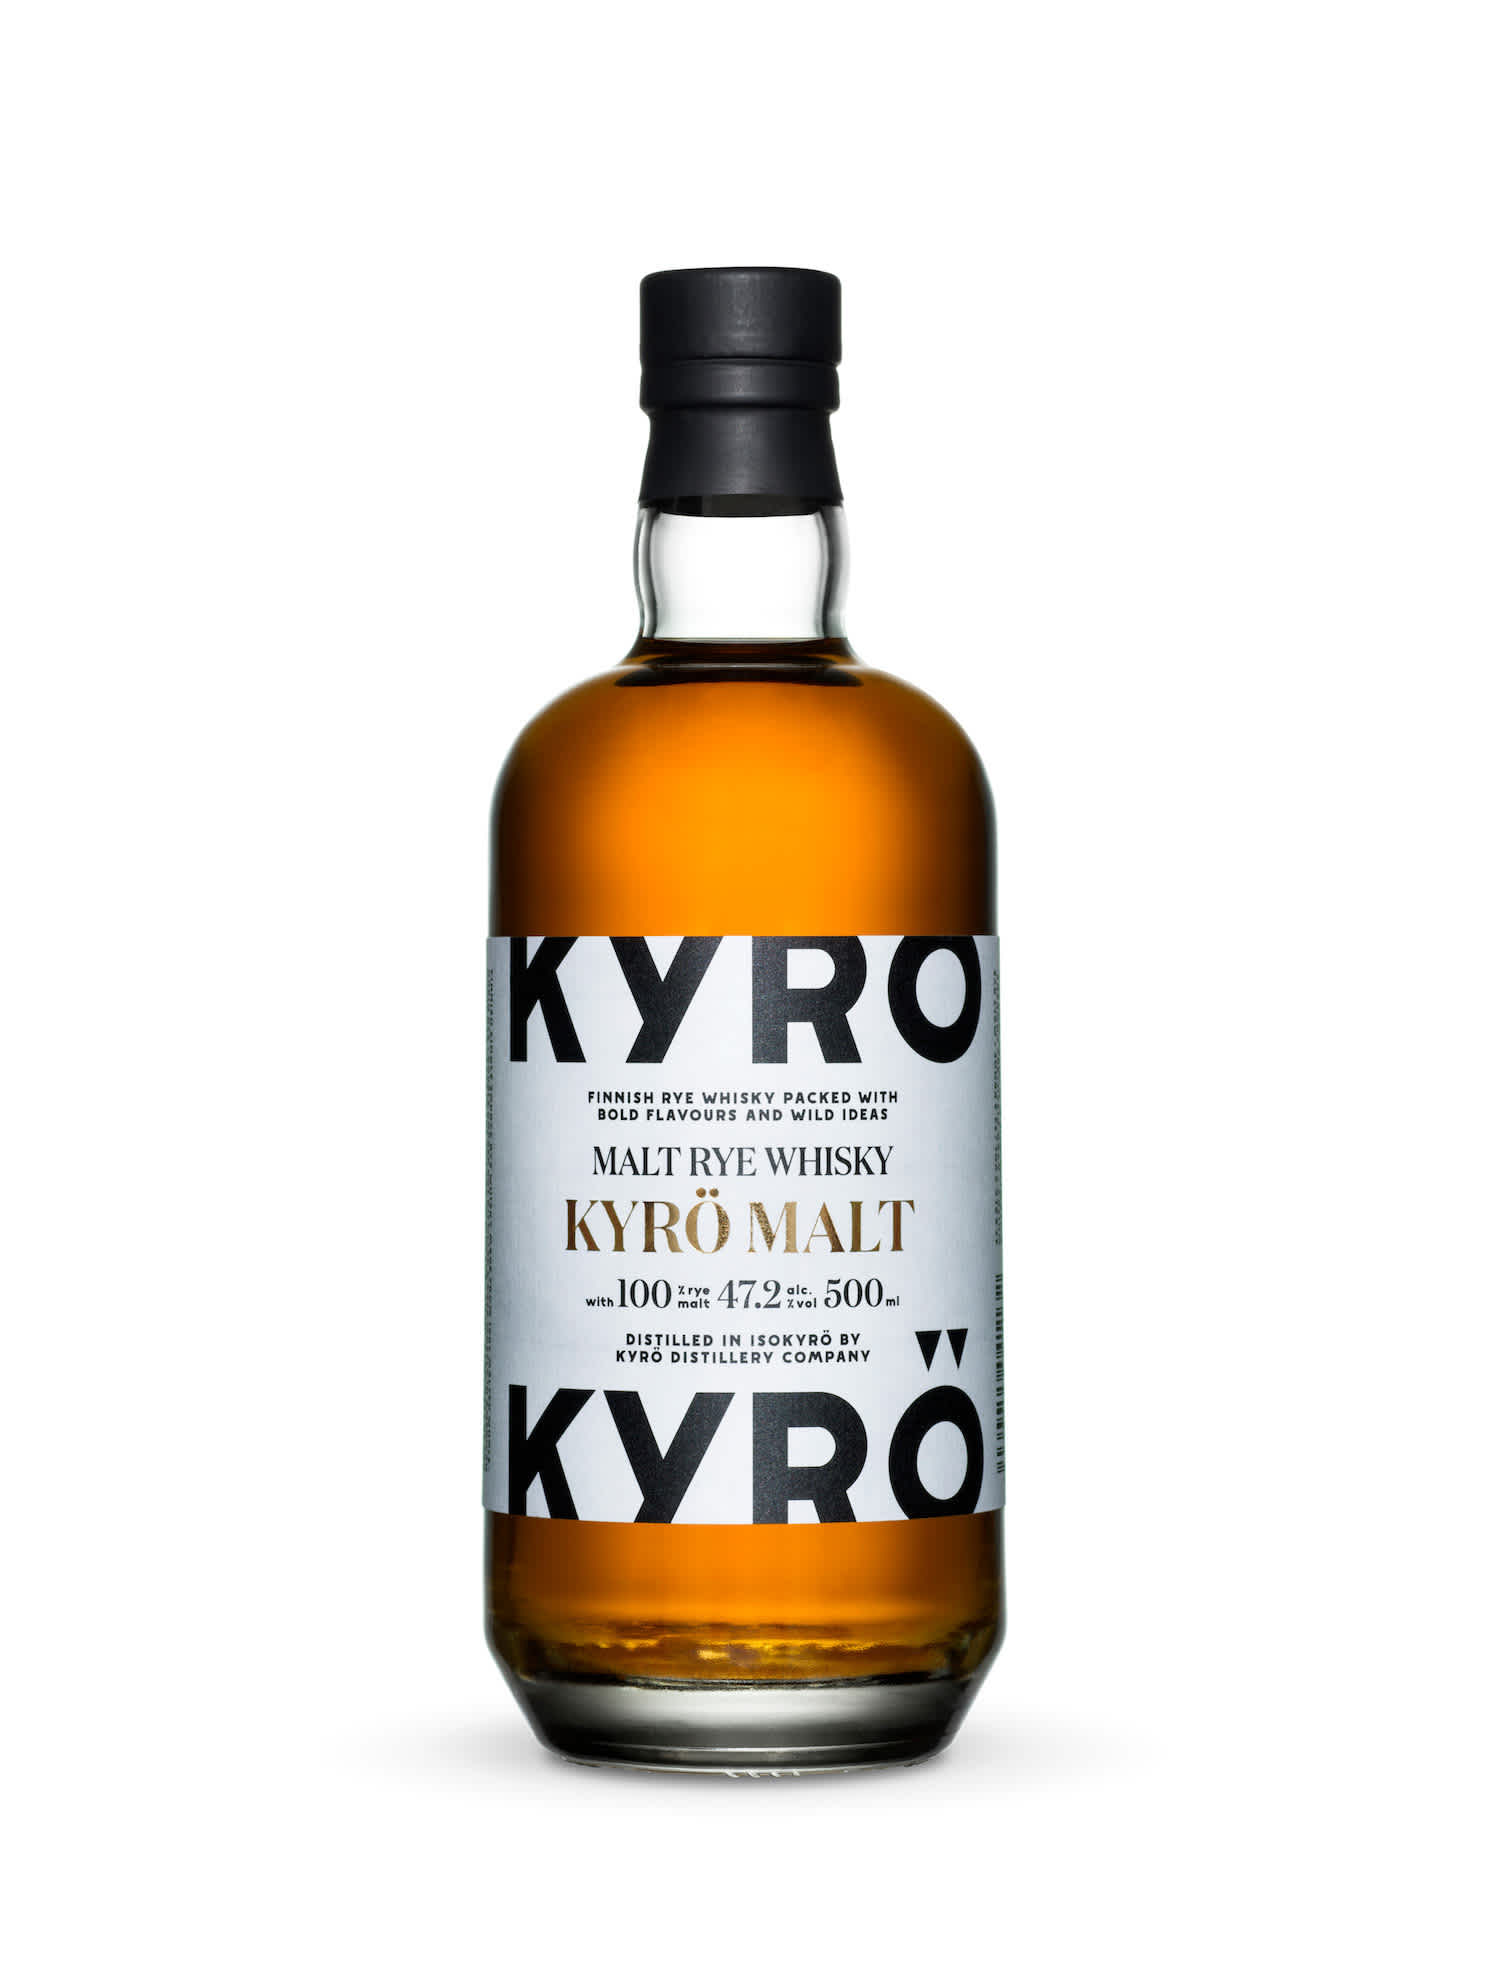 Product photo: 0,5 l bottle of award winning, Finnish rye whisky from Kyrö Distillery Company.